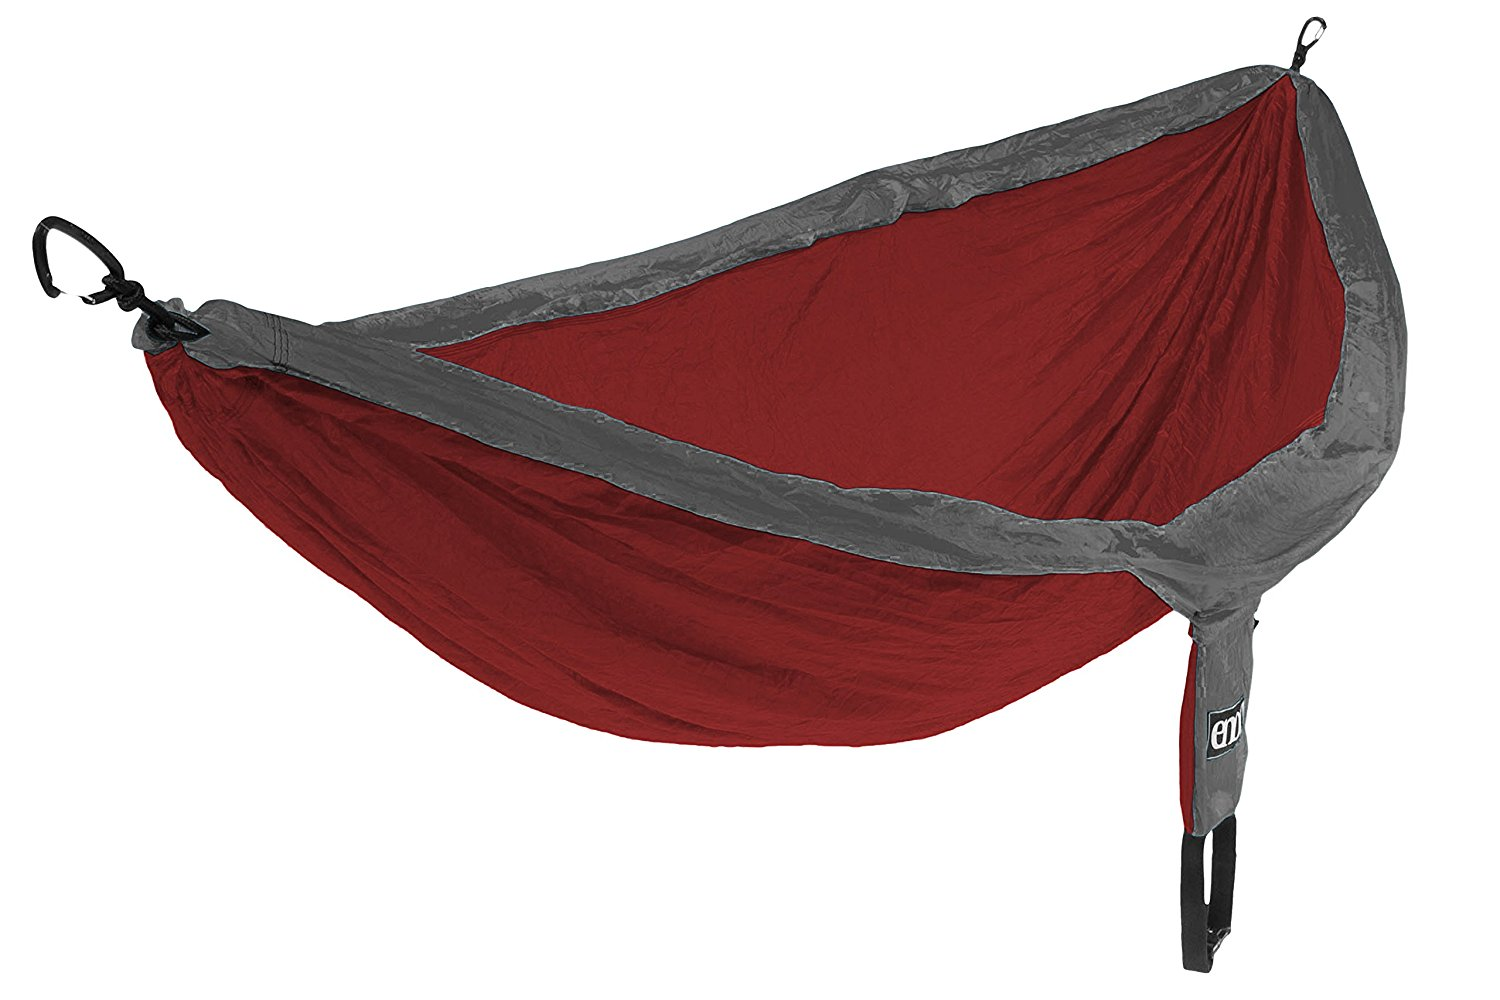 ENO Eagles Nest Outfitters - DoubleNest Hammock, The Original Portable Outdoor Camping Hammock for Two, Special Edition Colors, Charcoal/Maroon